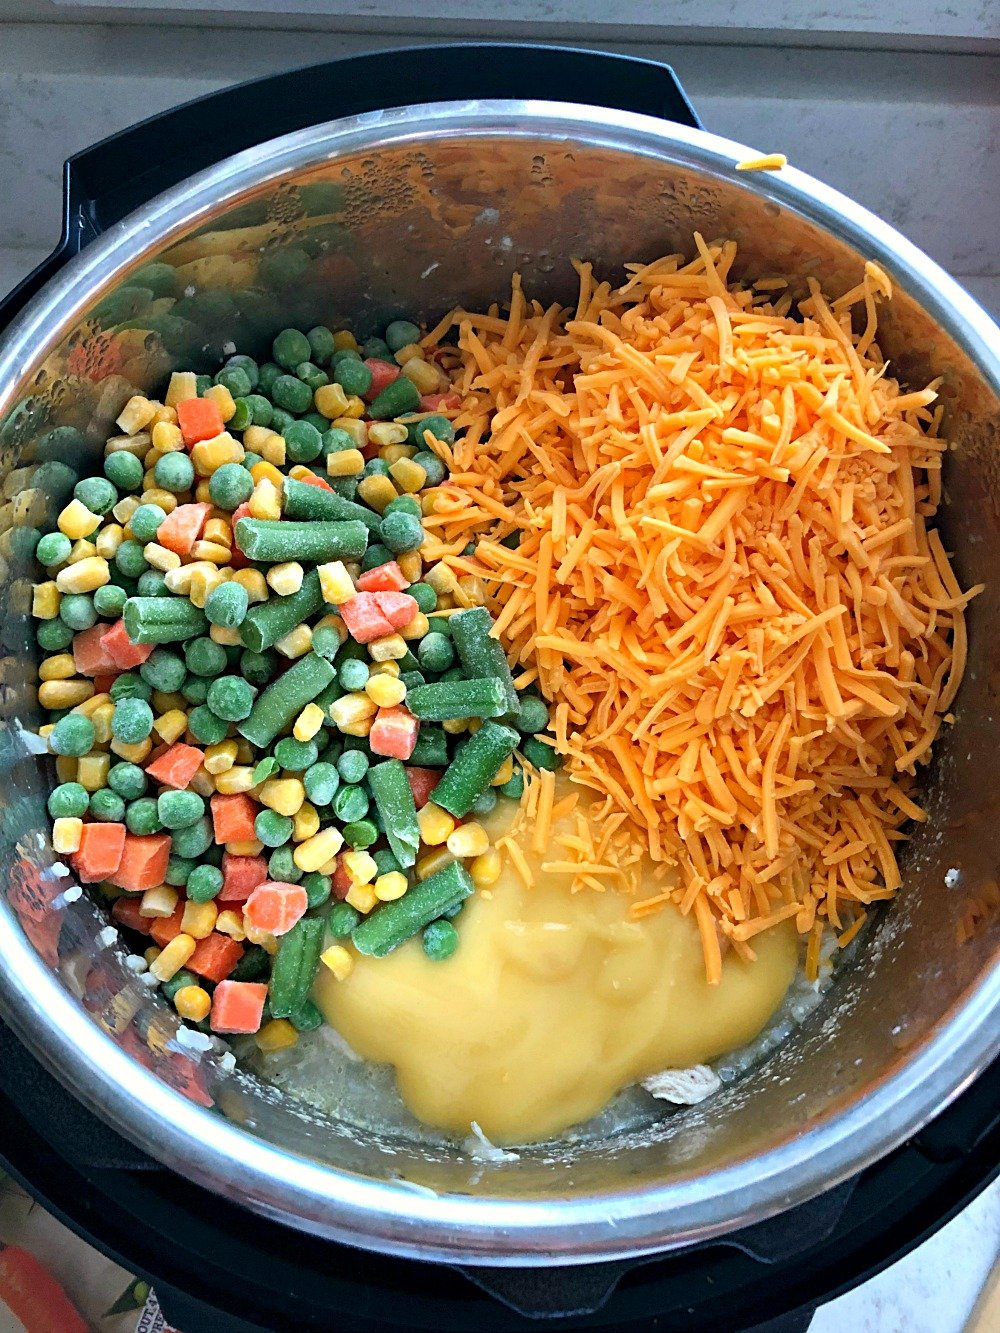 frozen vegetables, cheese, and chicken soup dumped into an instant pot